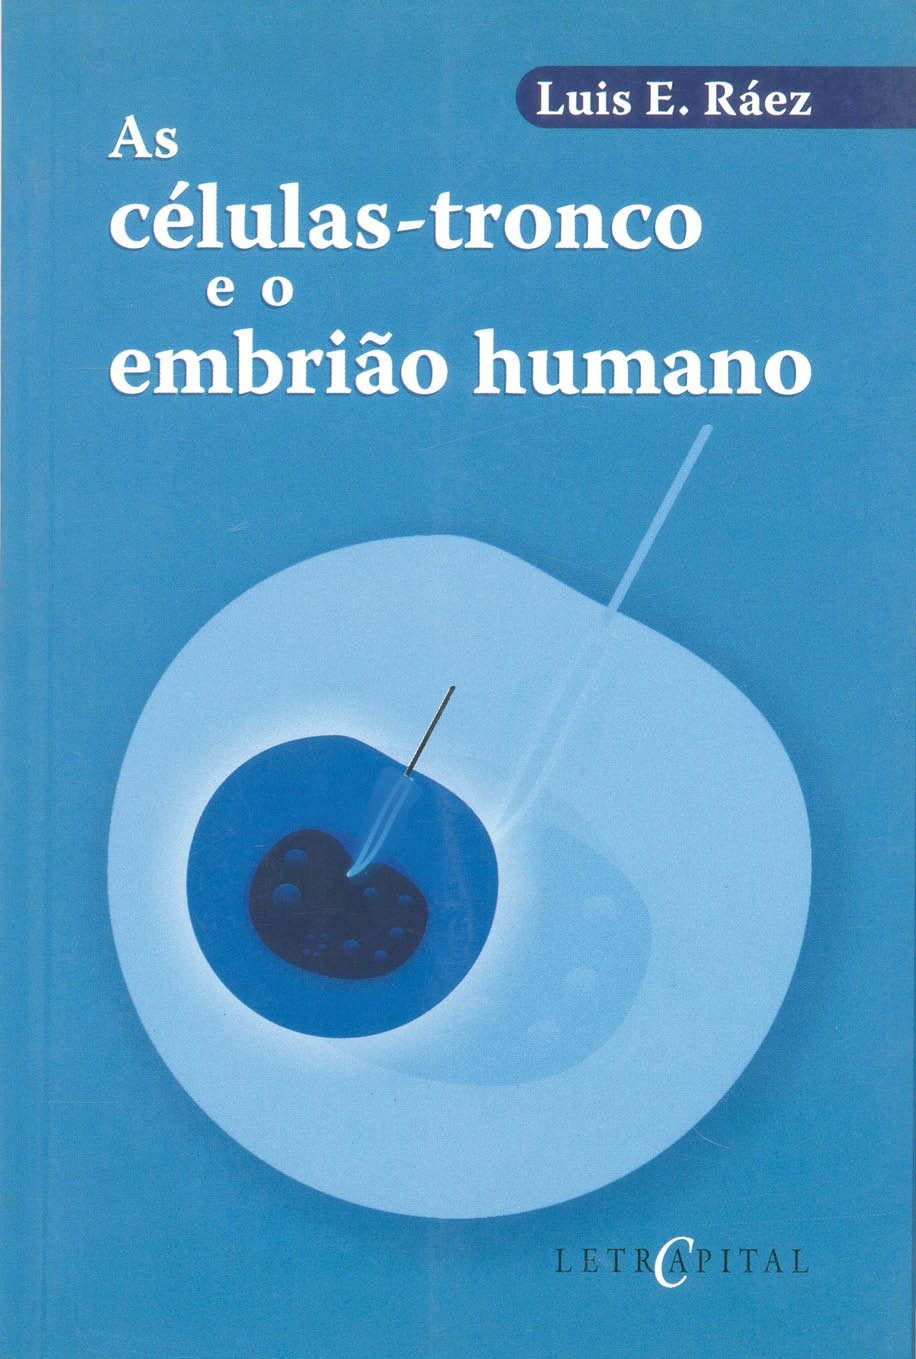 As células-tronco e o embrião humano